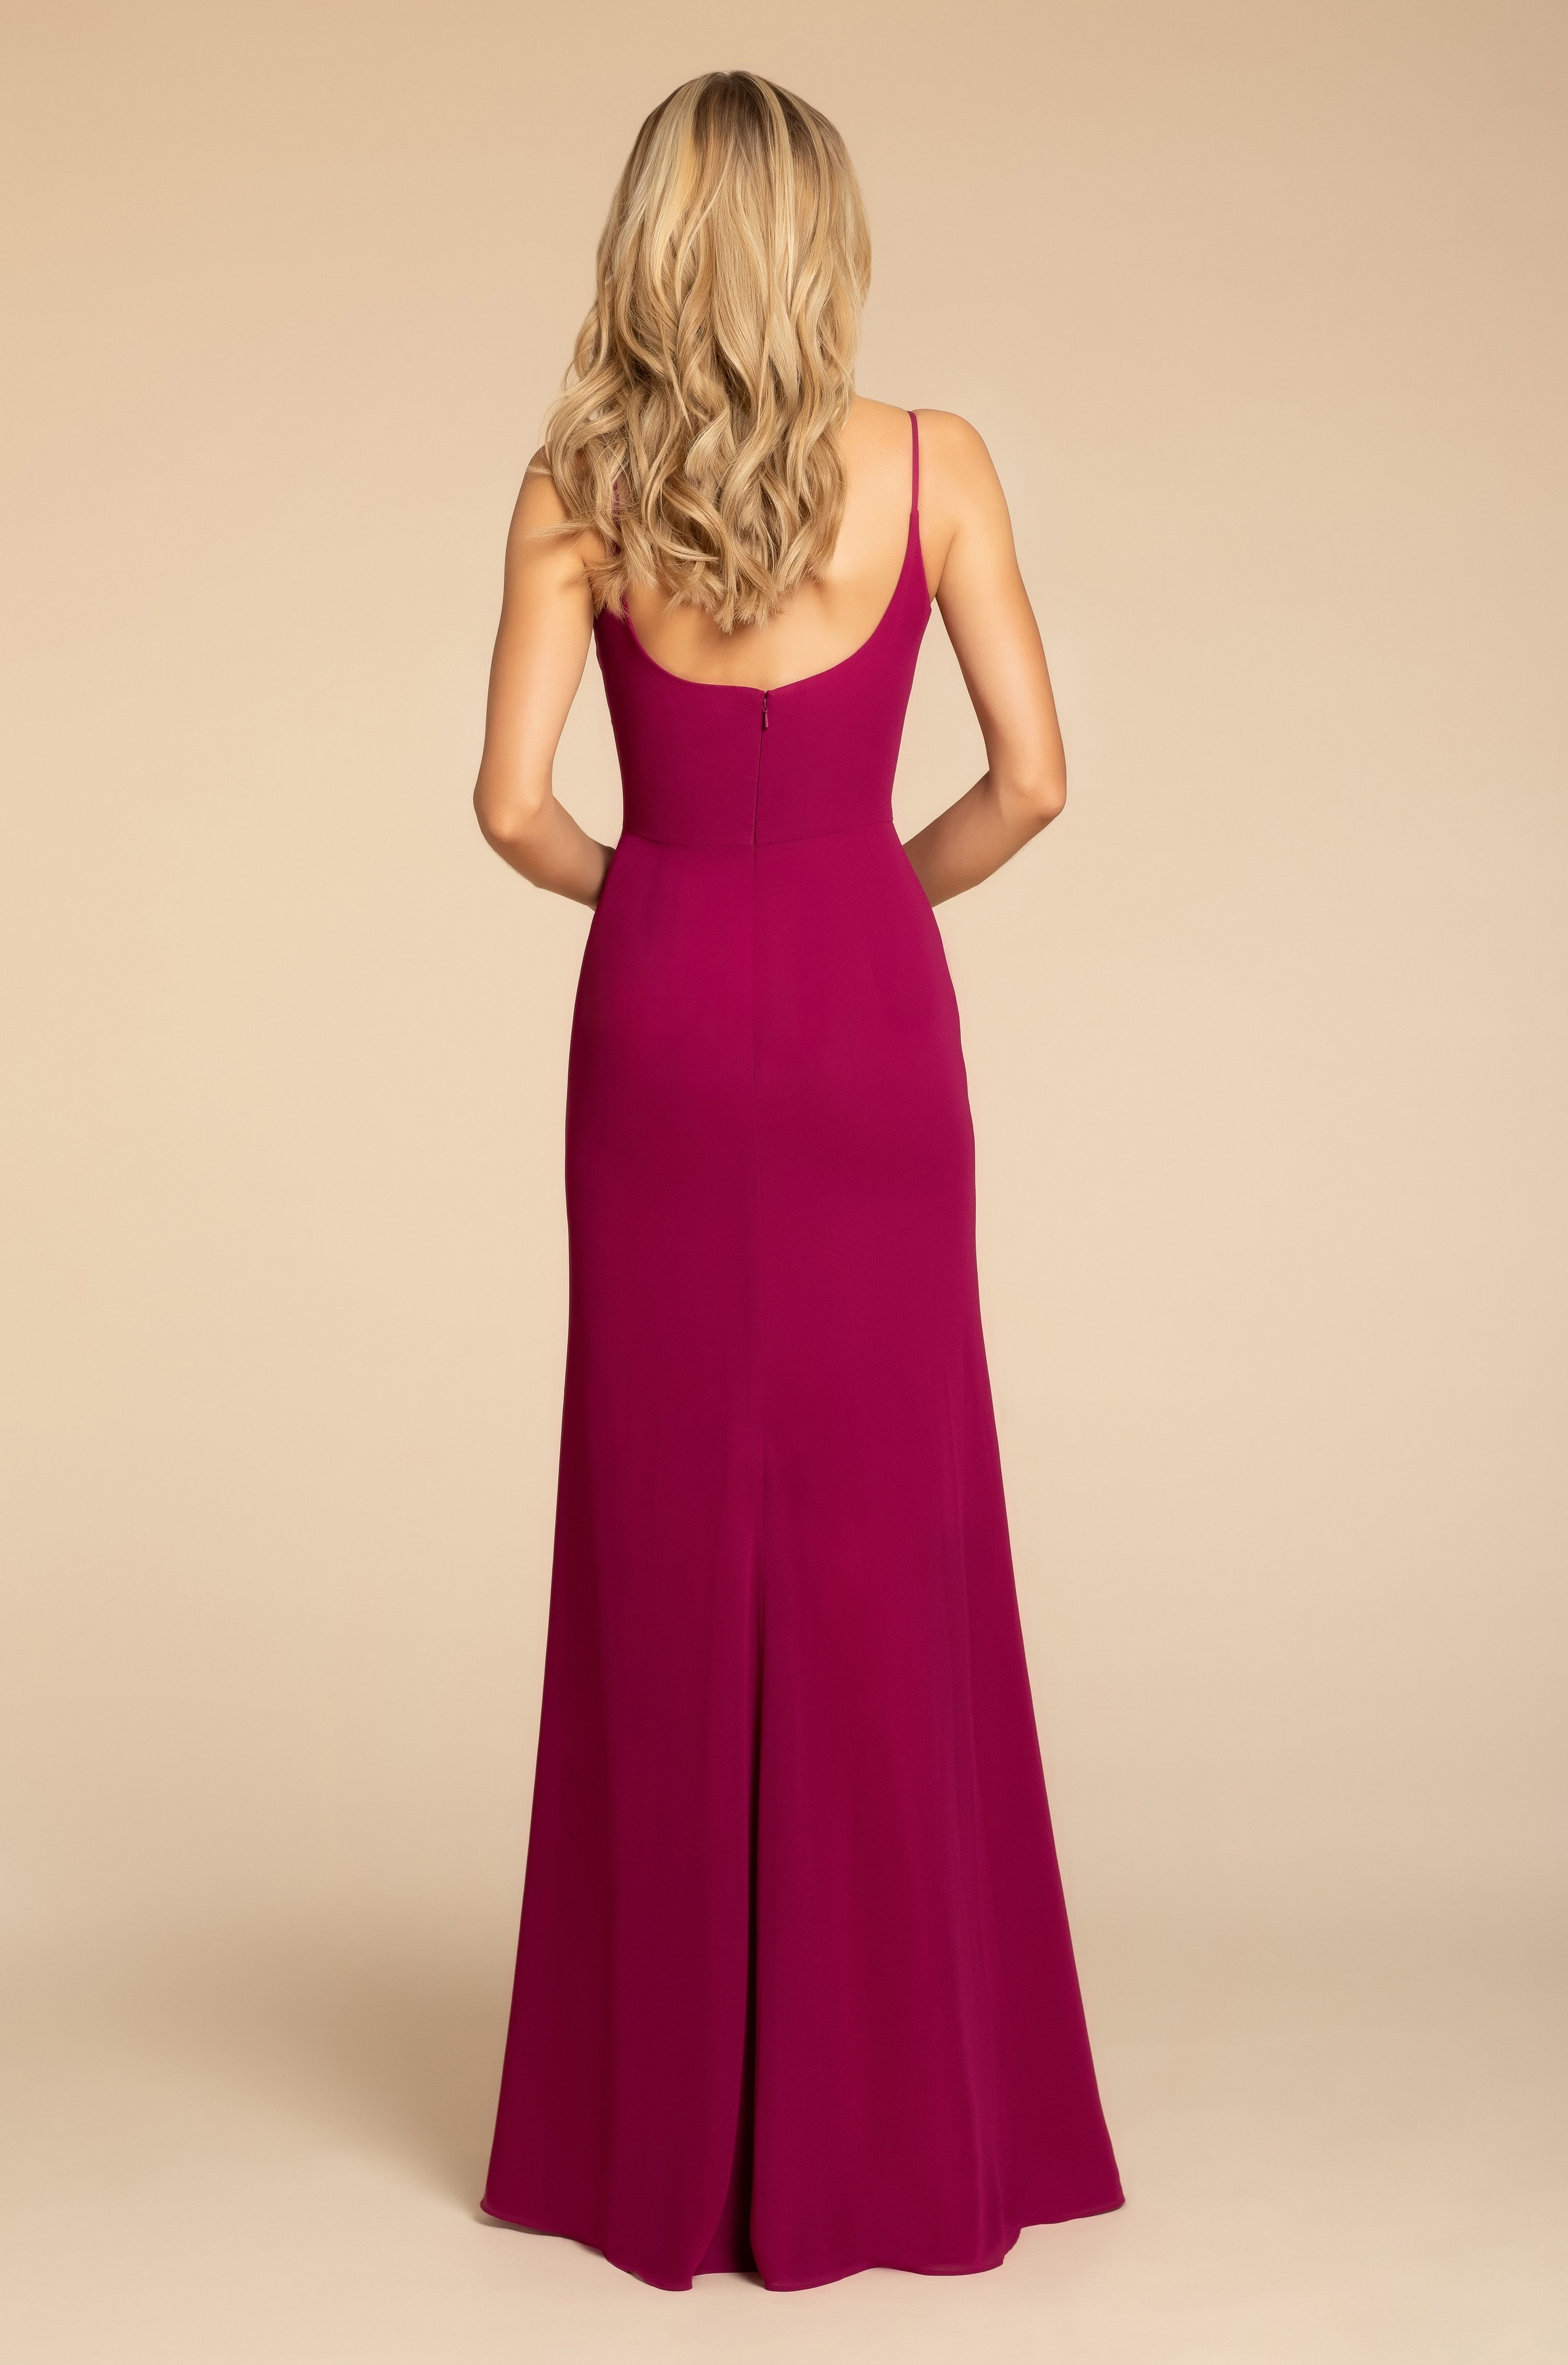 Pin On Bridesmaid Dresses Miss Ruby